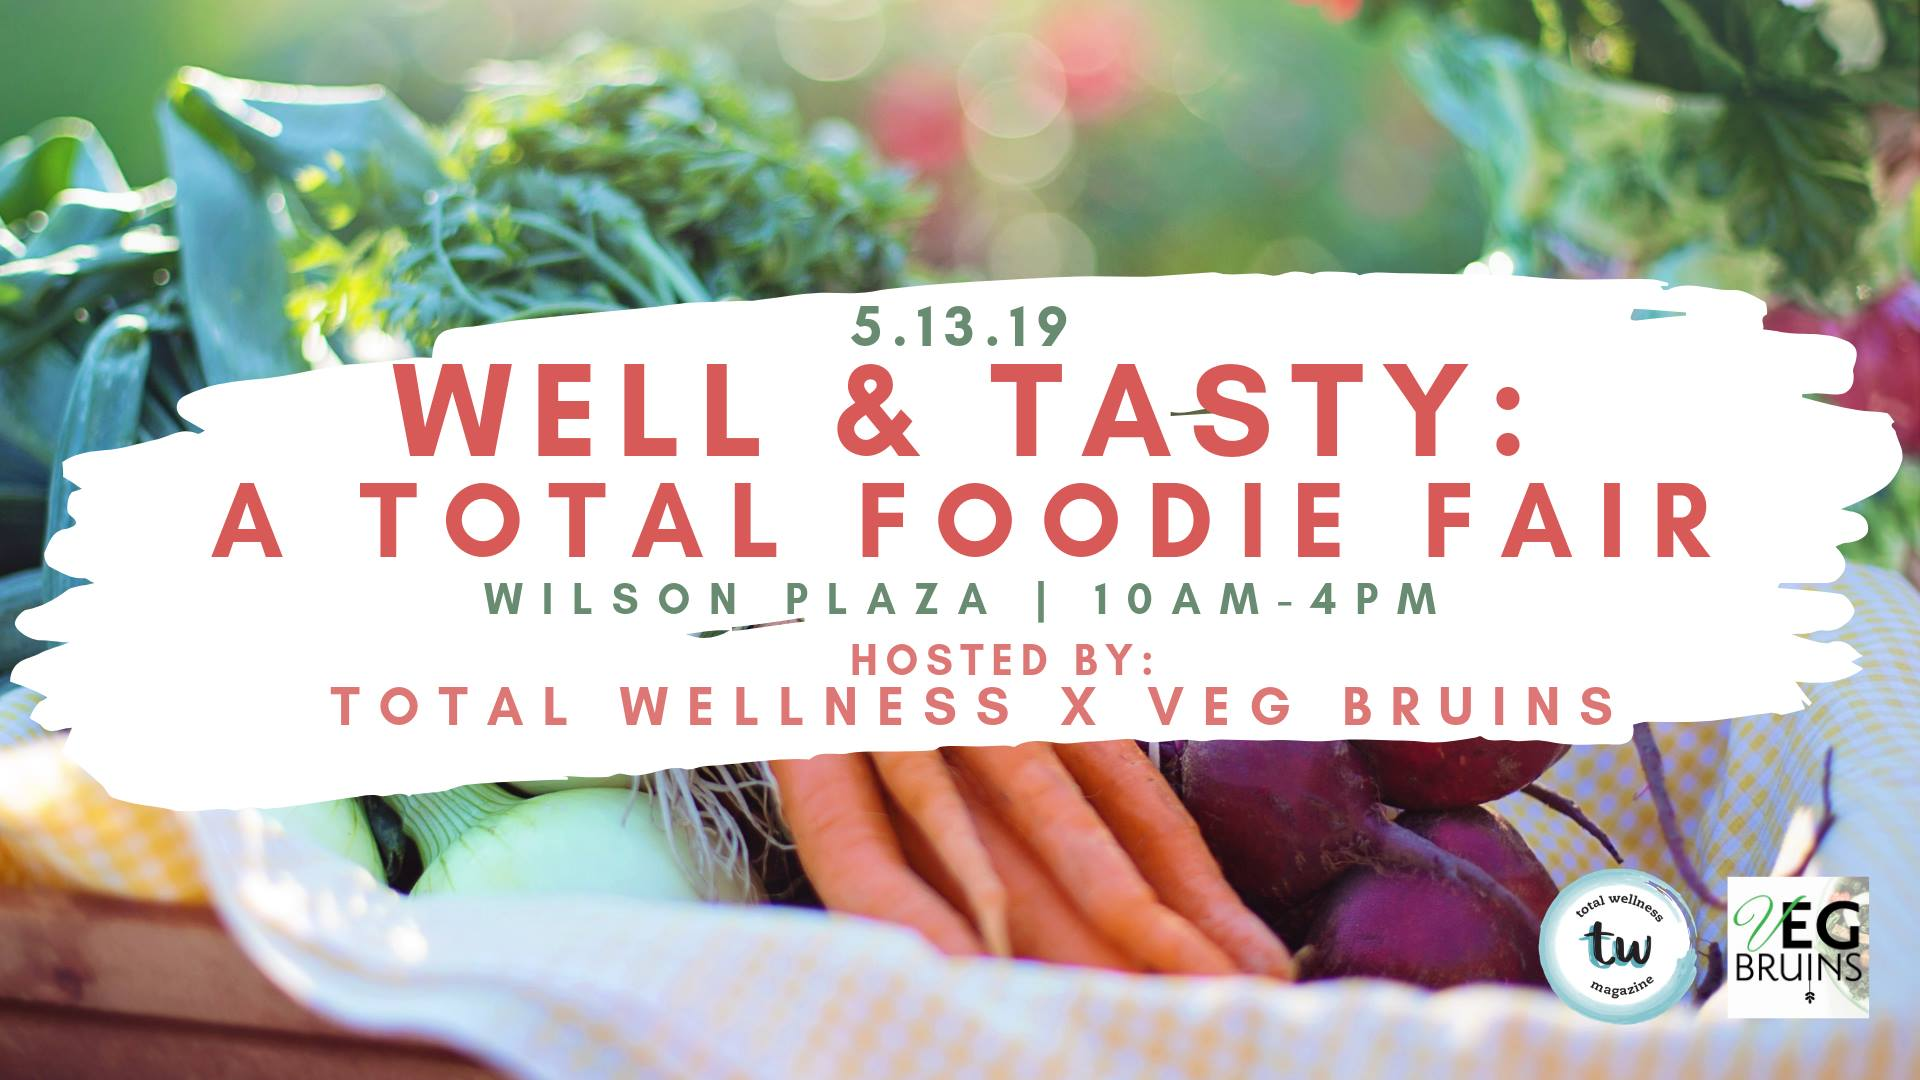 Well & Tasty: A Total Foodie Fair @ Wilson Plaza